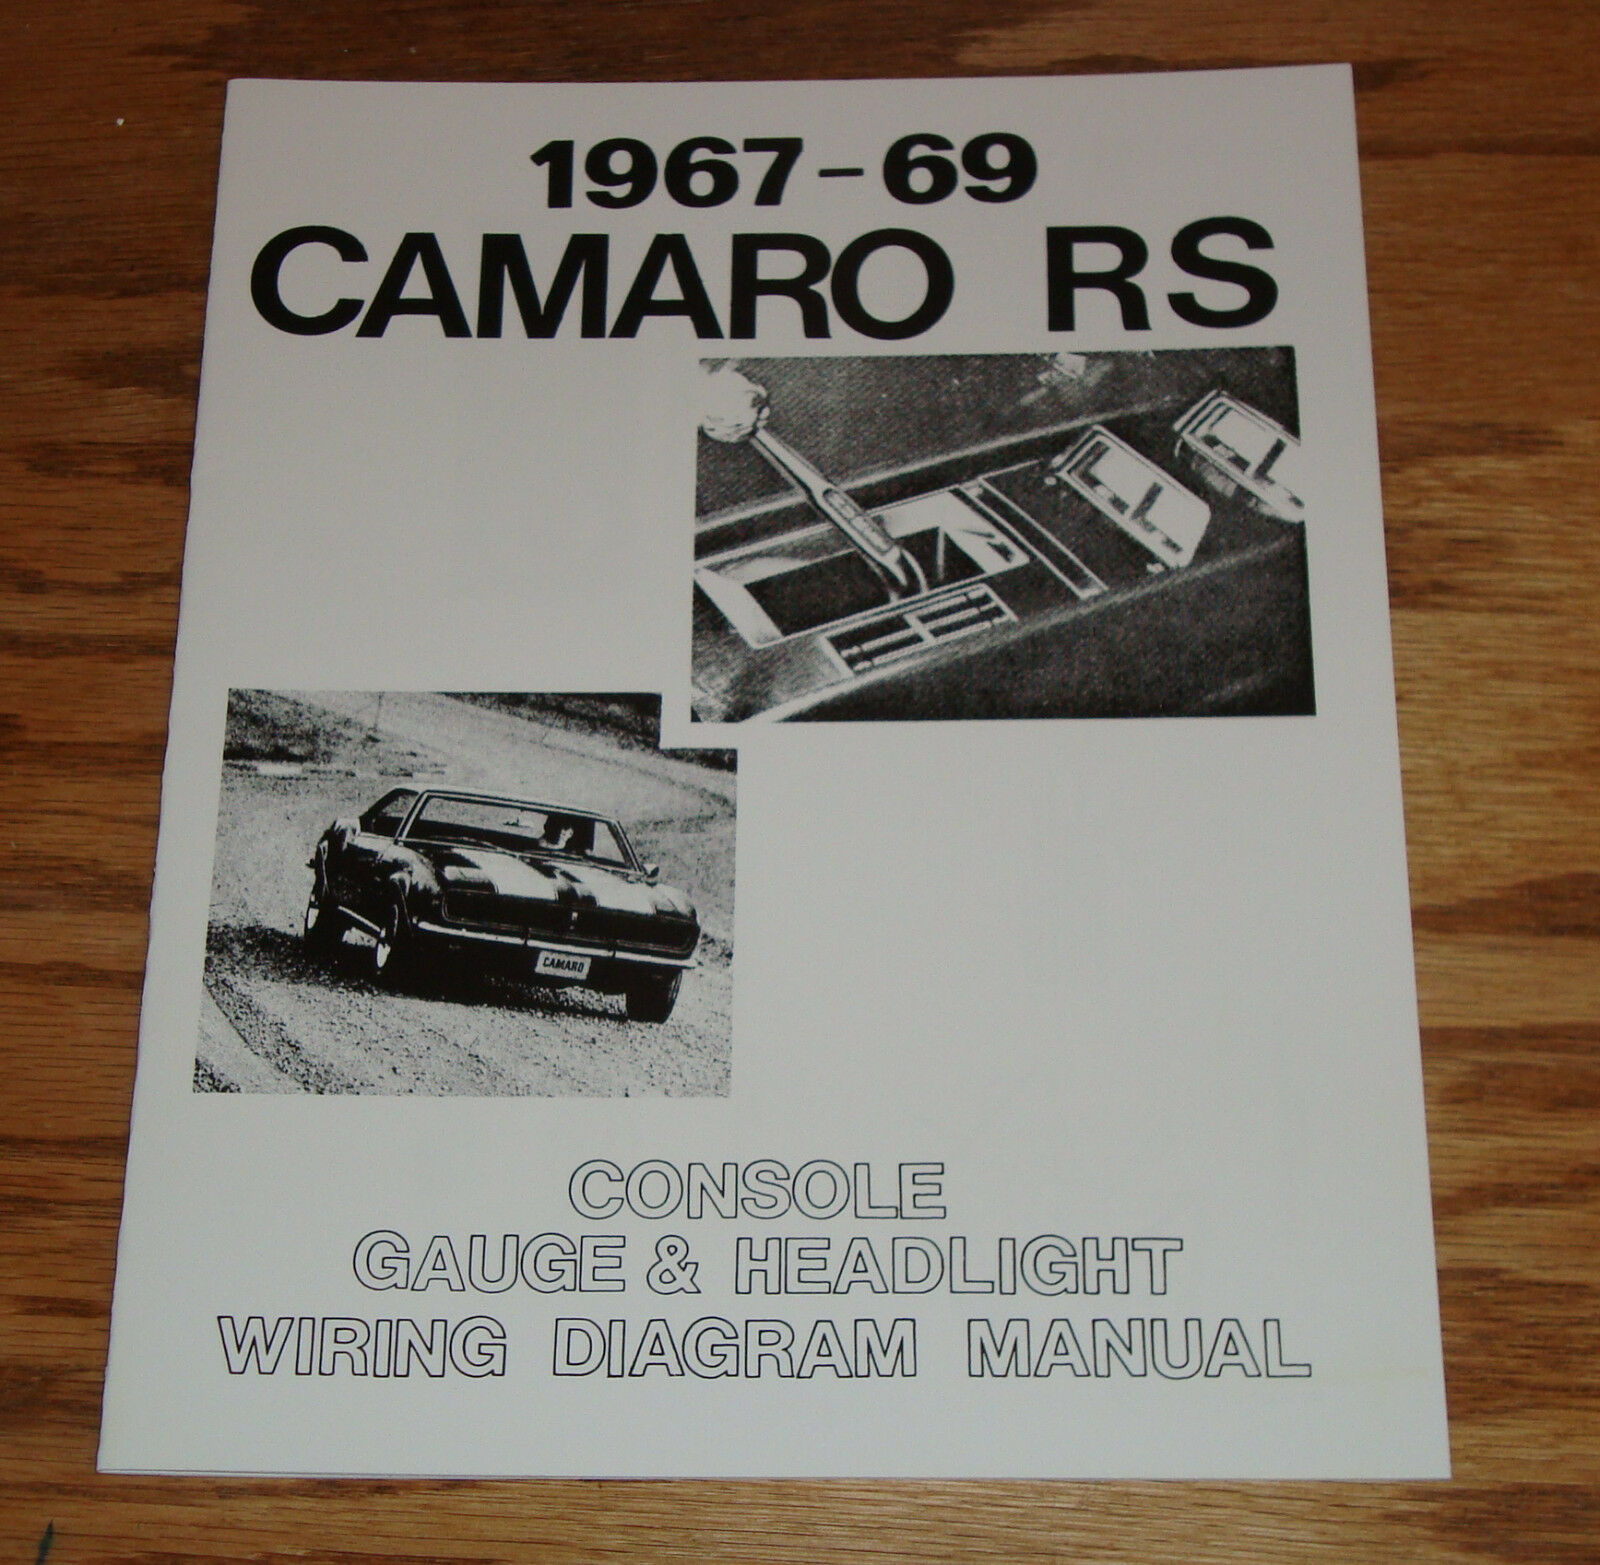 1967 1968 1969 Chevrolet Camaro Rs Wiring Diagram Manual 67 68 69 Chevy Fuel Gauge 1 Of 1only 2 Available See More